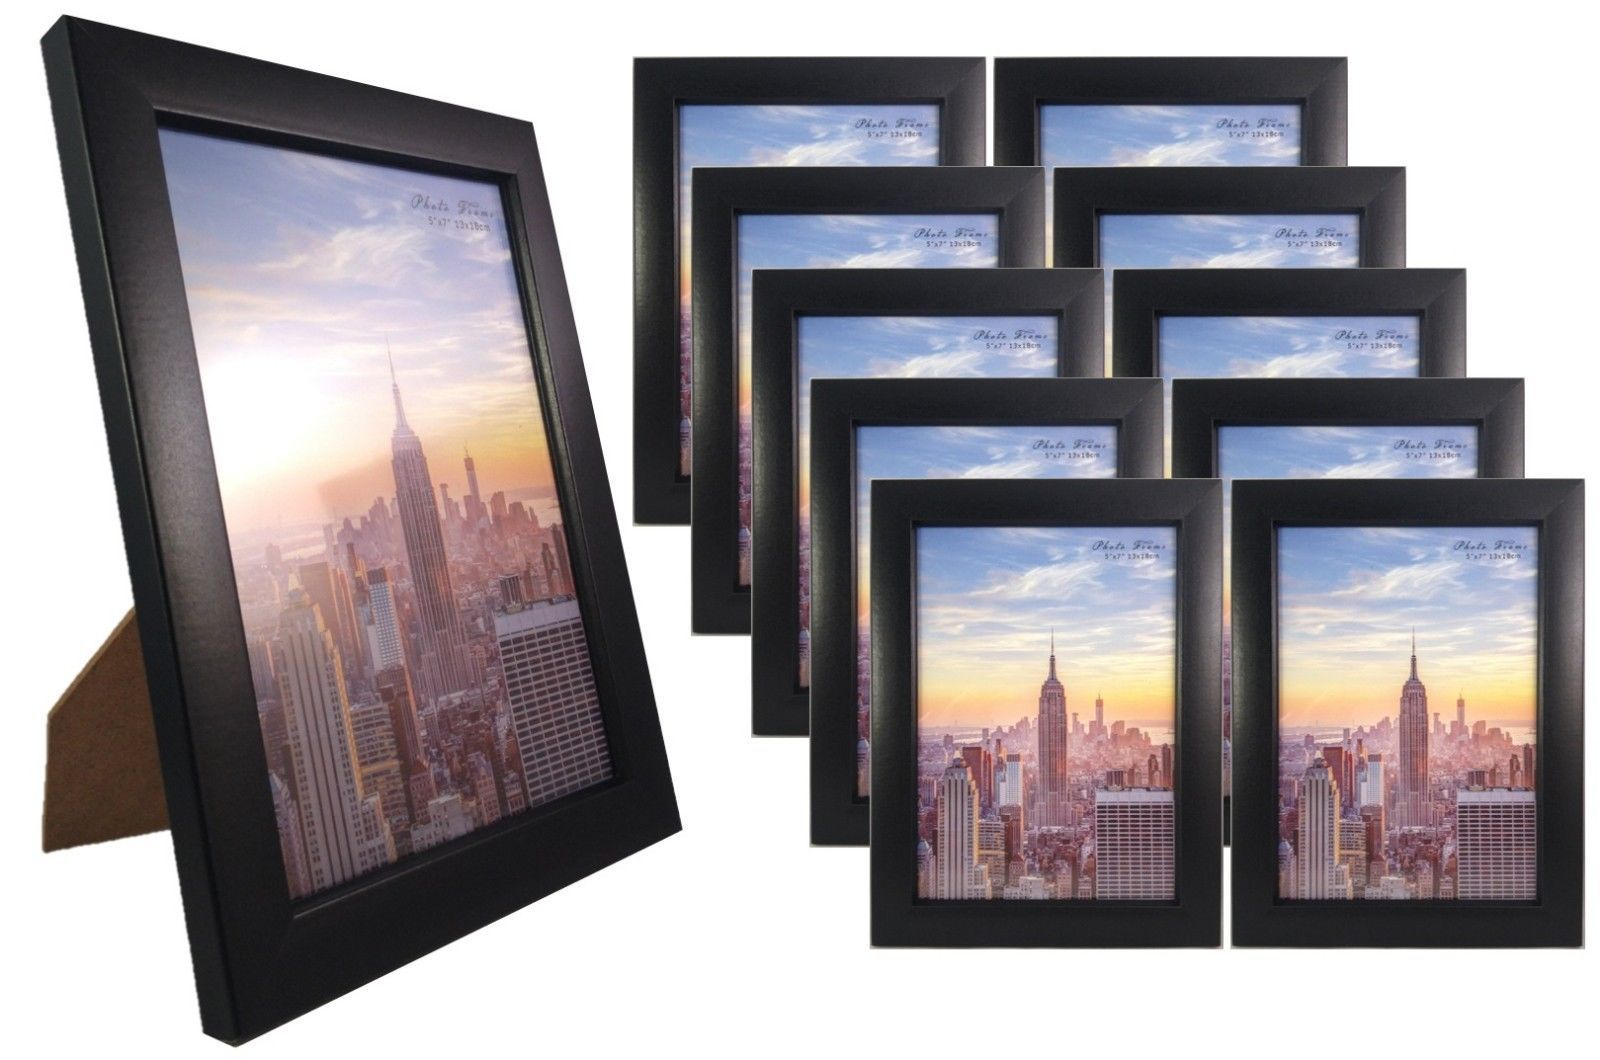 Frame Amo Black Picture Frame With Glass Front Face Wall Or Table 1 3 10 Pack Picture On Wood Wood Picture Frames Barn Wood Picture Frames